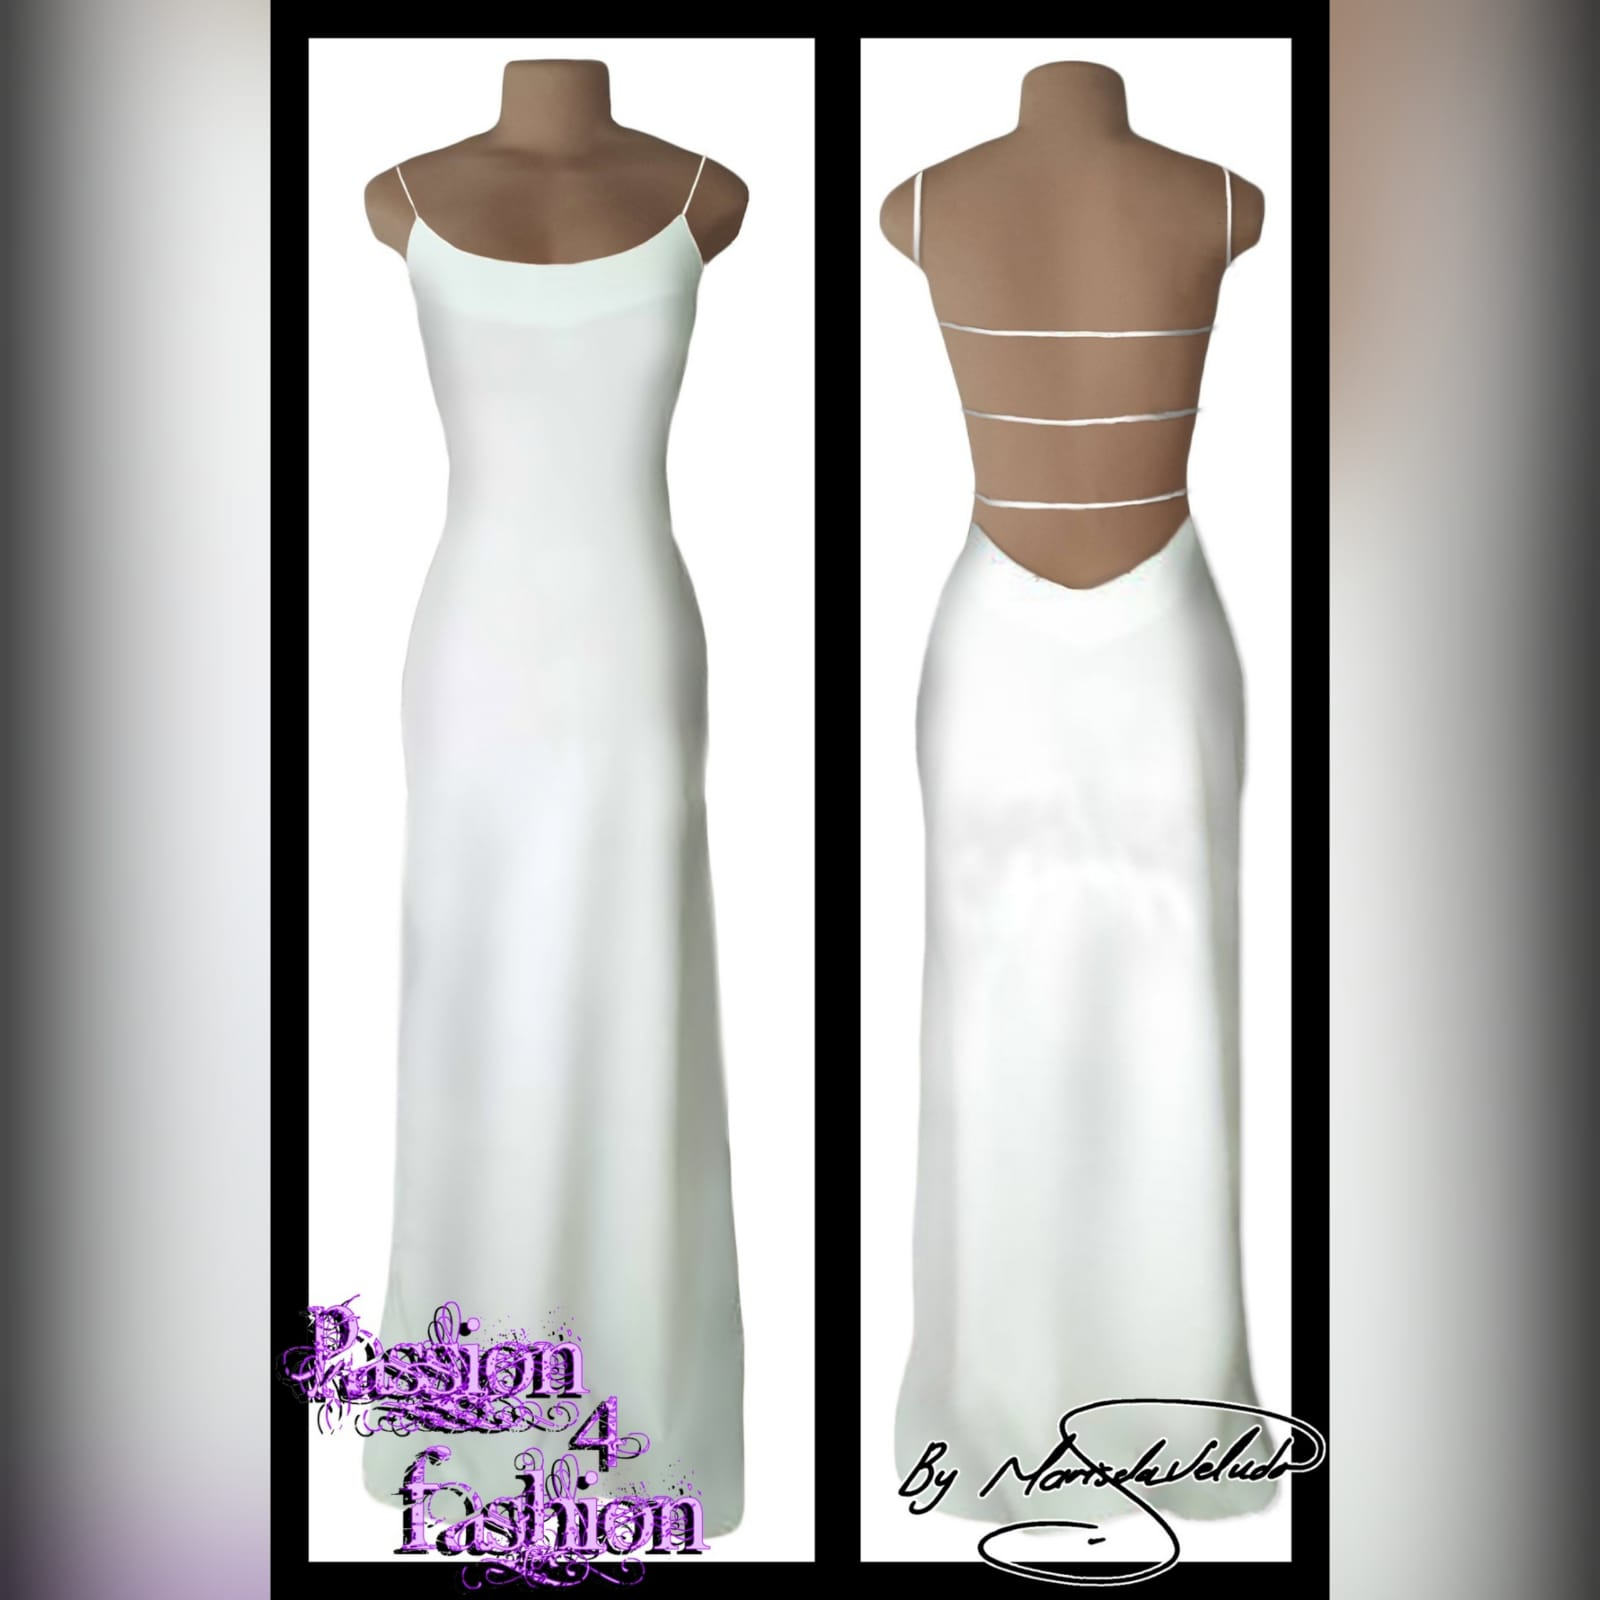 White long sexy evening dress 3 white long sexy evening dress with a low open back detailed with straps